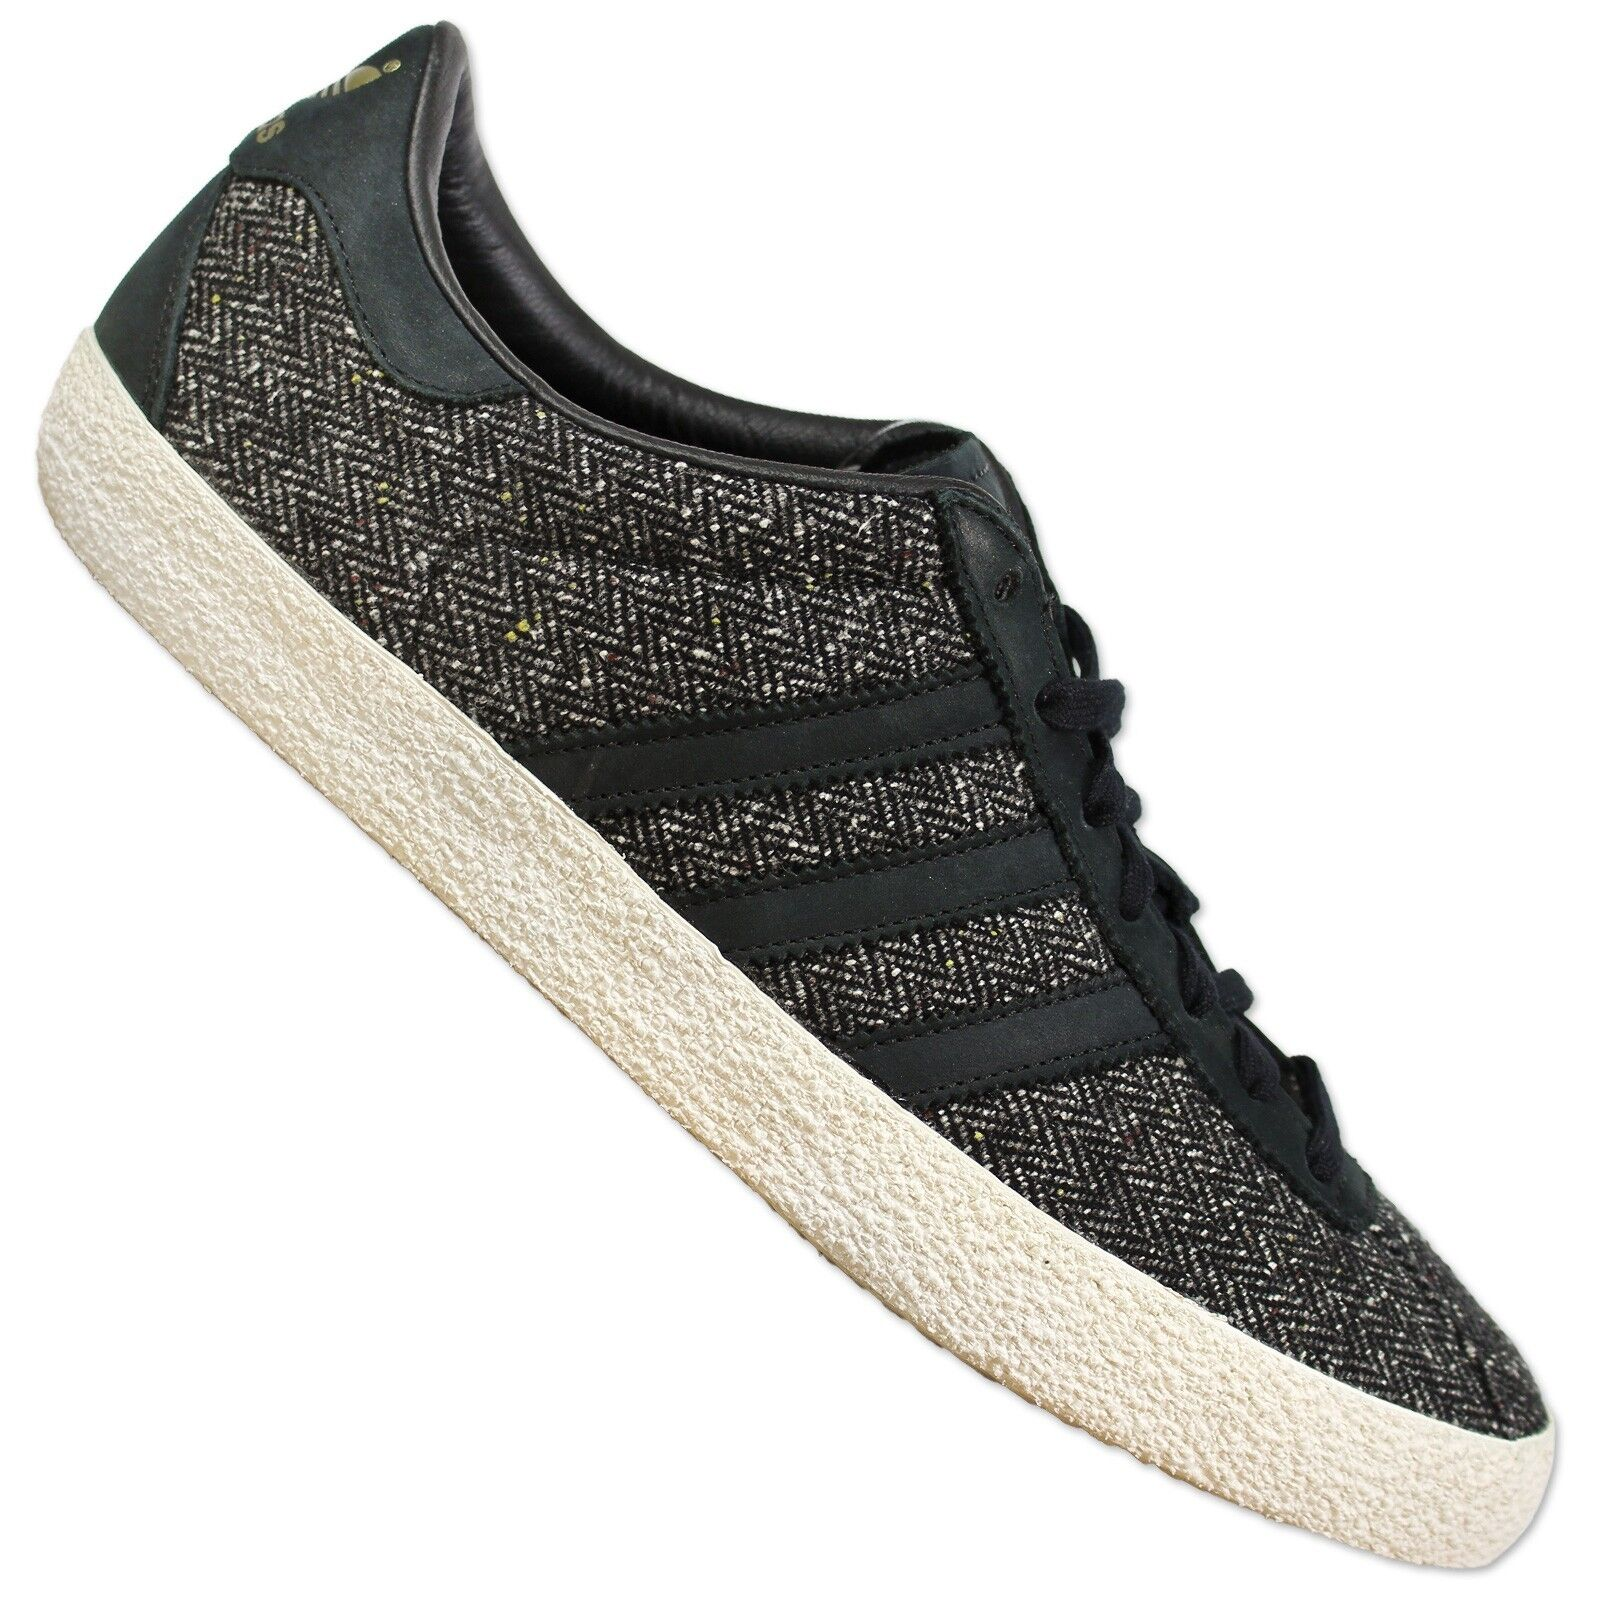 Adidas Originals Gazelle gamuza 70s zapatillas b24981 Zapatos  de gamuza Gazelle tweed negro f3da22